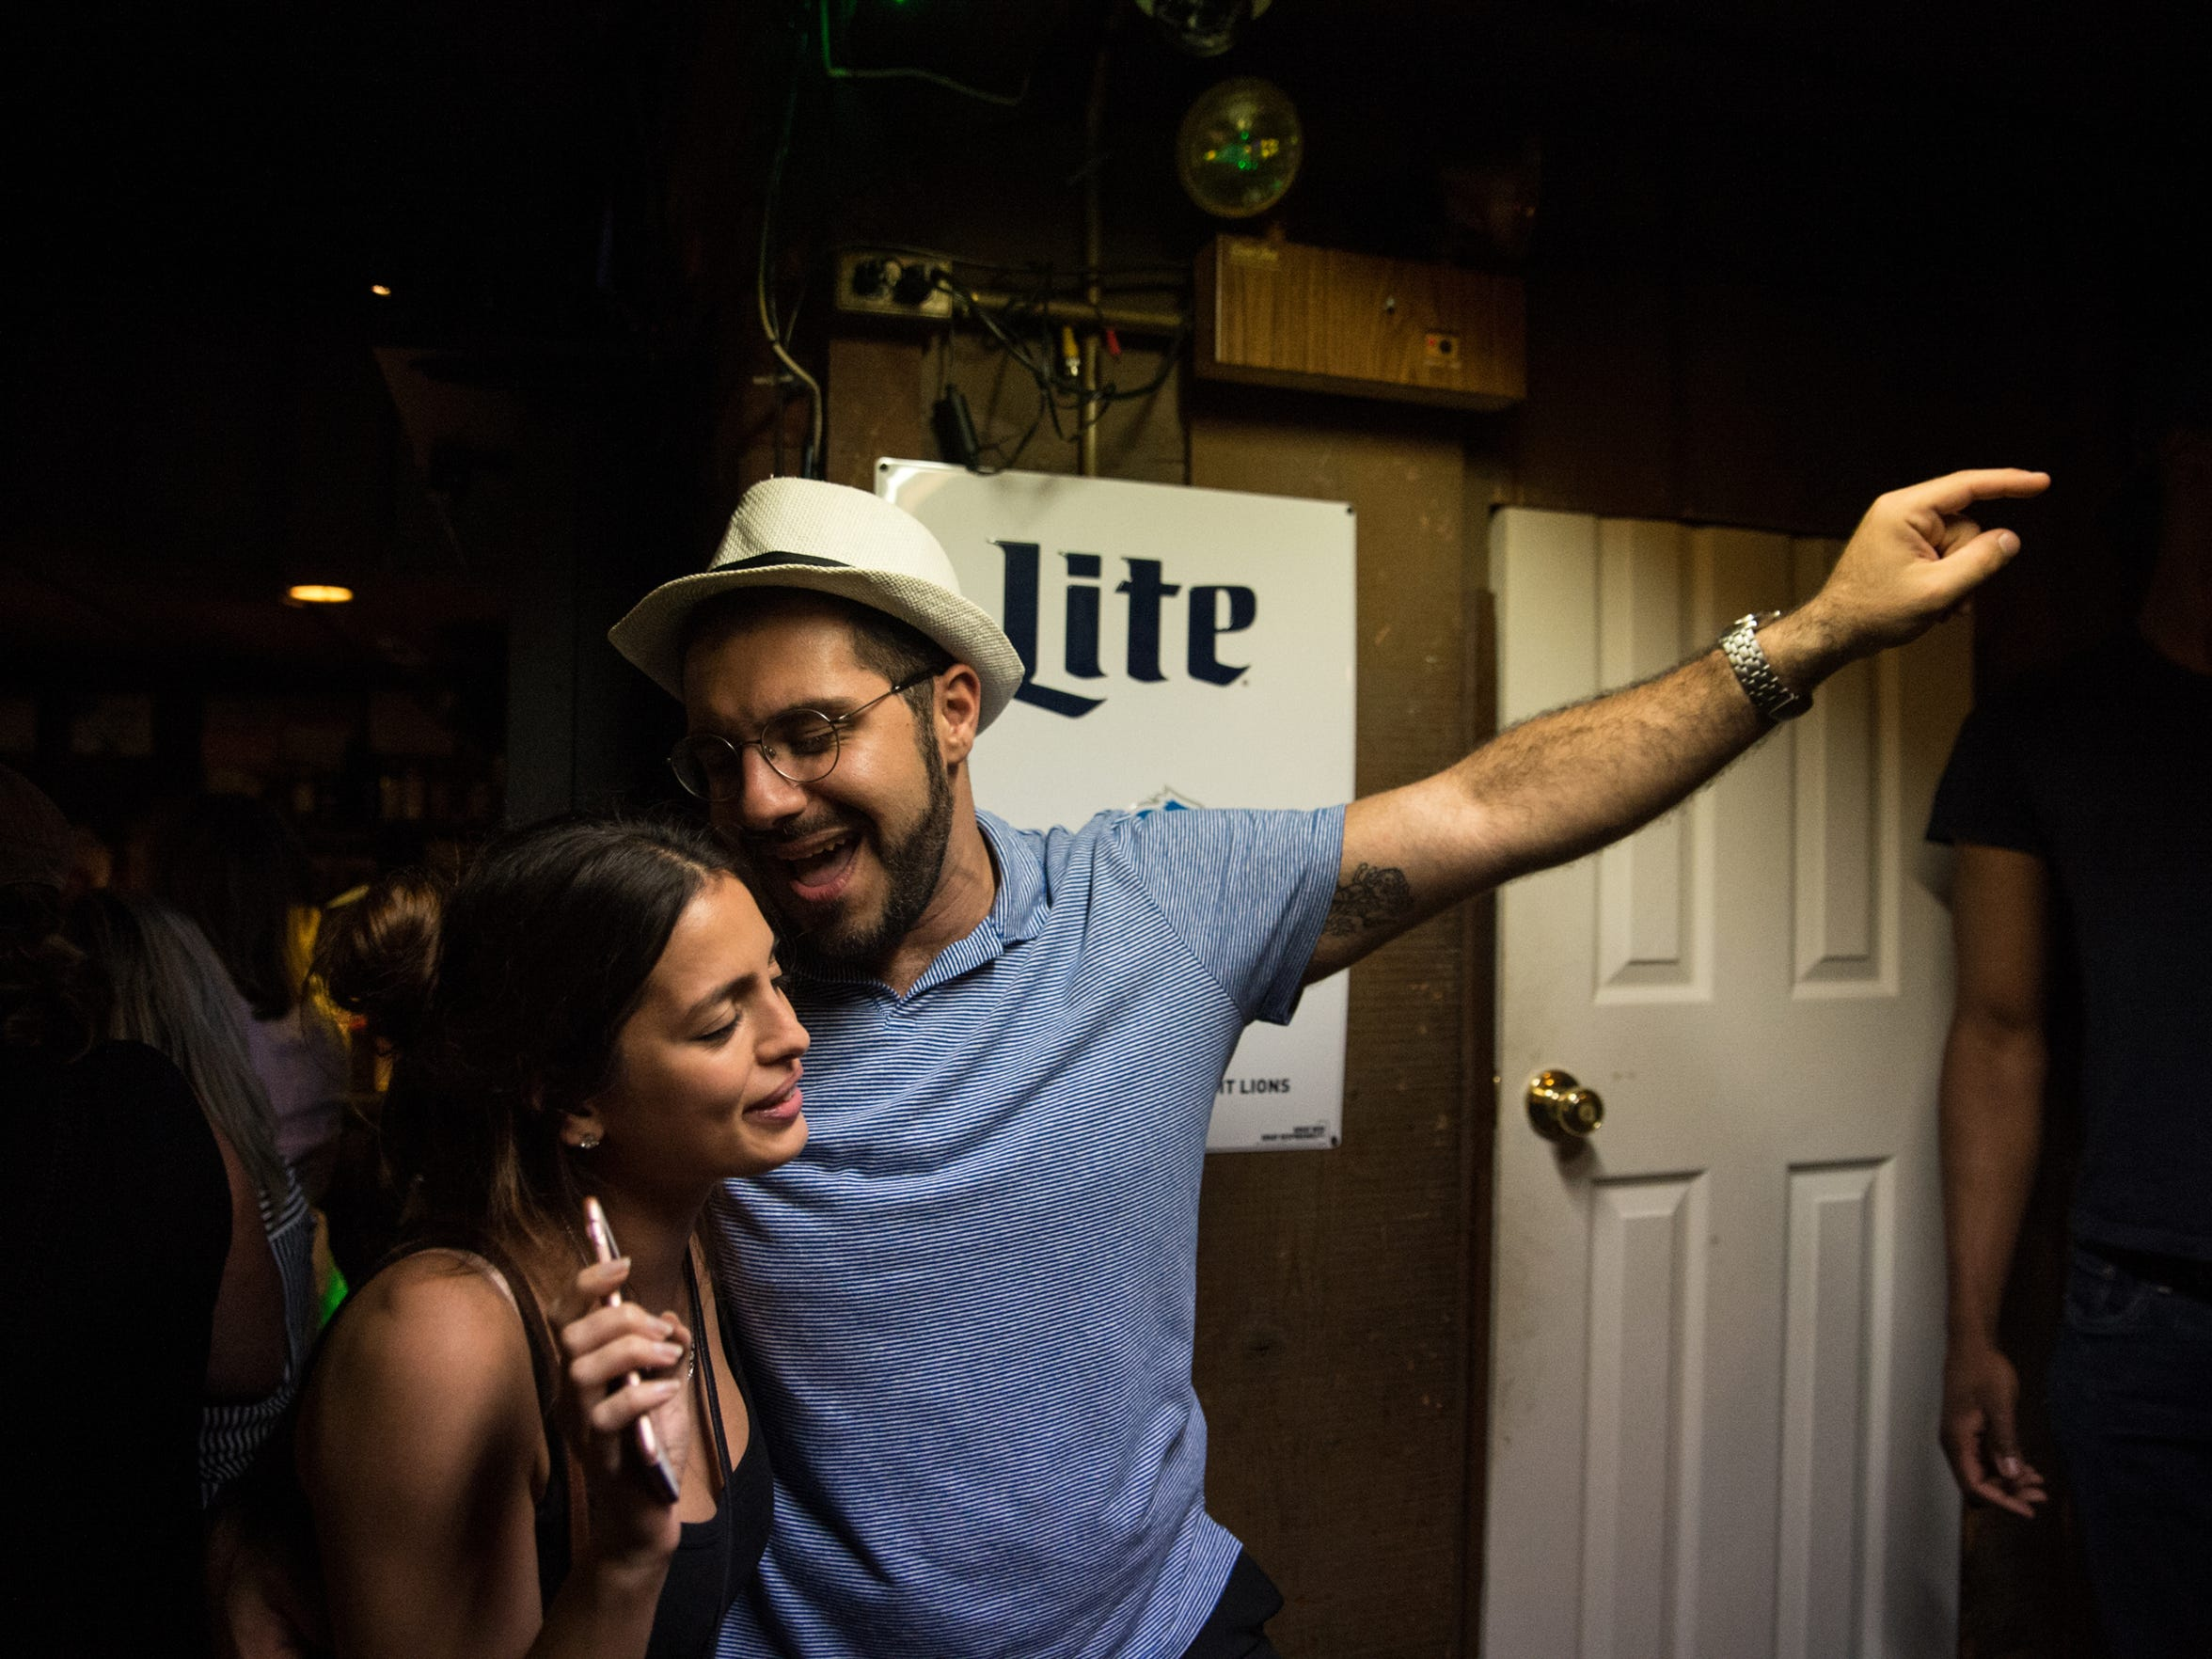 Yafa Davydova of Royal Oak and Nadeem Kandalaft of Royal Oak sing along to karaoke at Sneakers' Pub in Ferndale, Mich. on Friday, July 20, 2018.